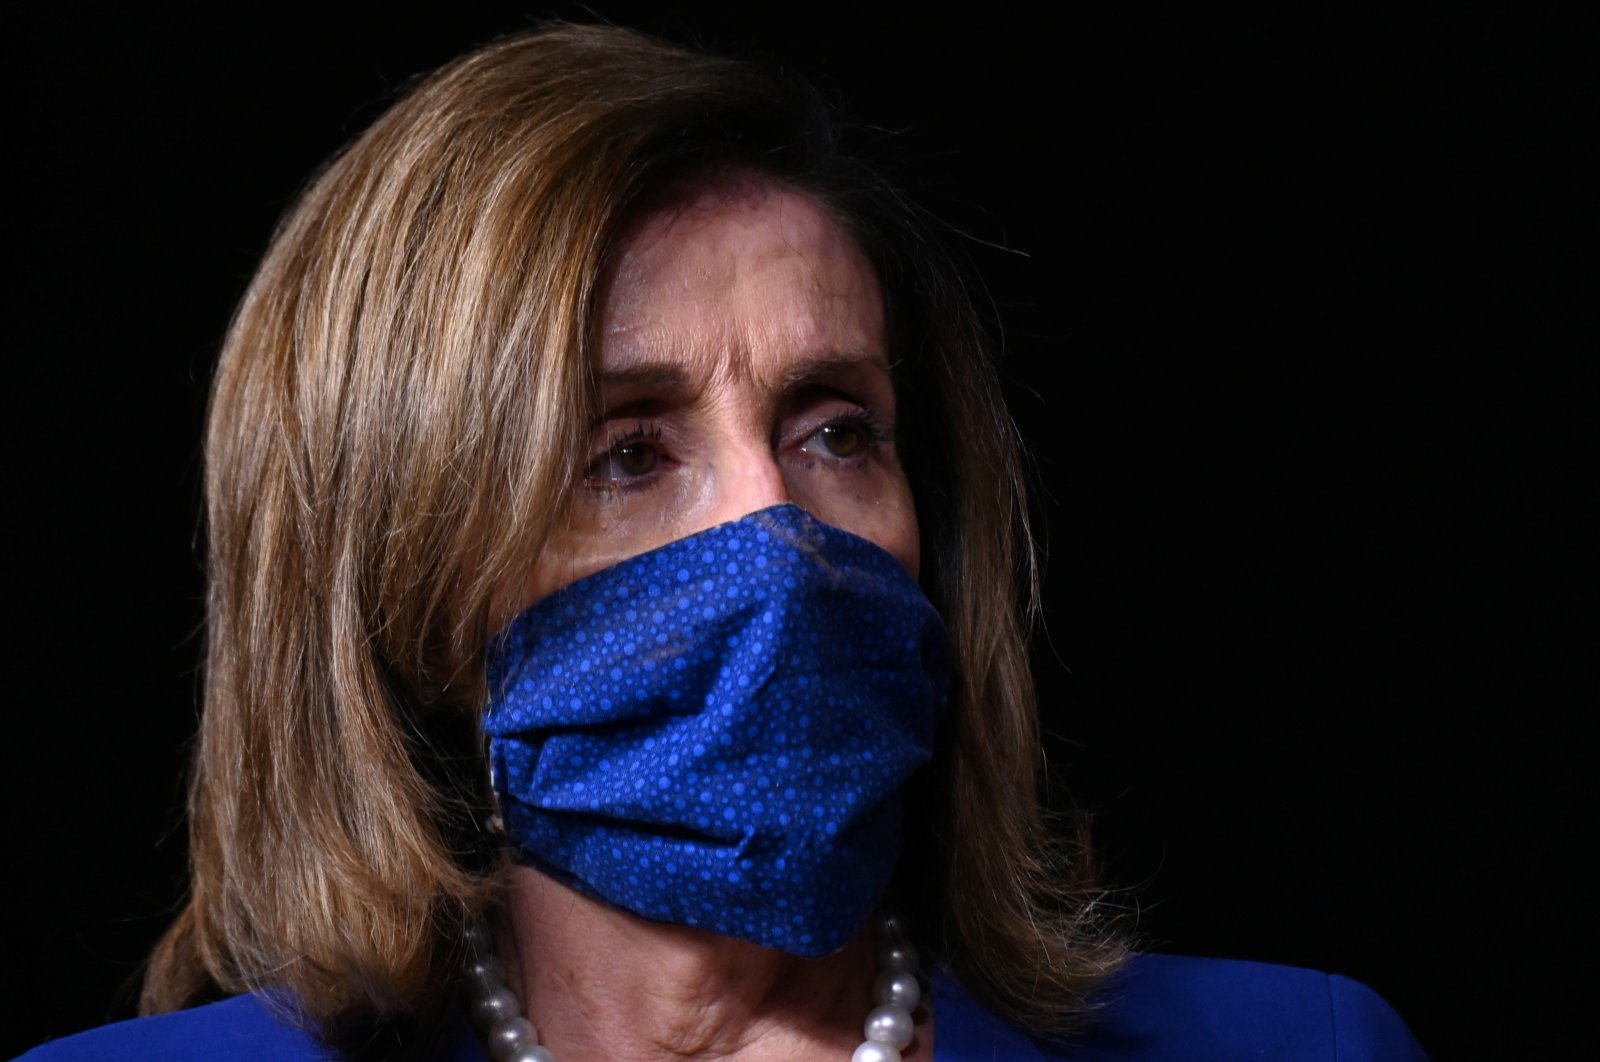 U.S. House Speaker Nancy Pelosi listens during a news conference ahead of House votes on the Child Care Is Essential Act and the Child Care for Economic Recovery Act in the U.S. Capitol, Washington, U.S. July 29, 2020. (Reuters Photo)